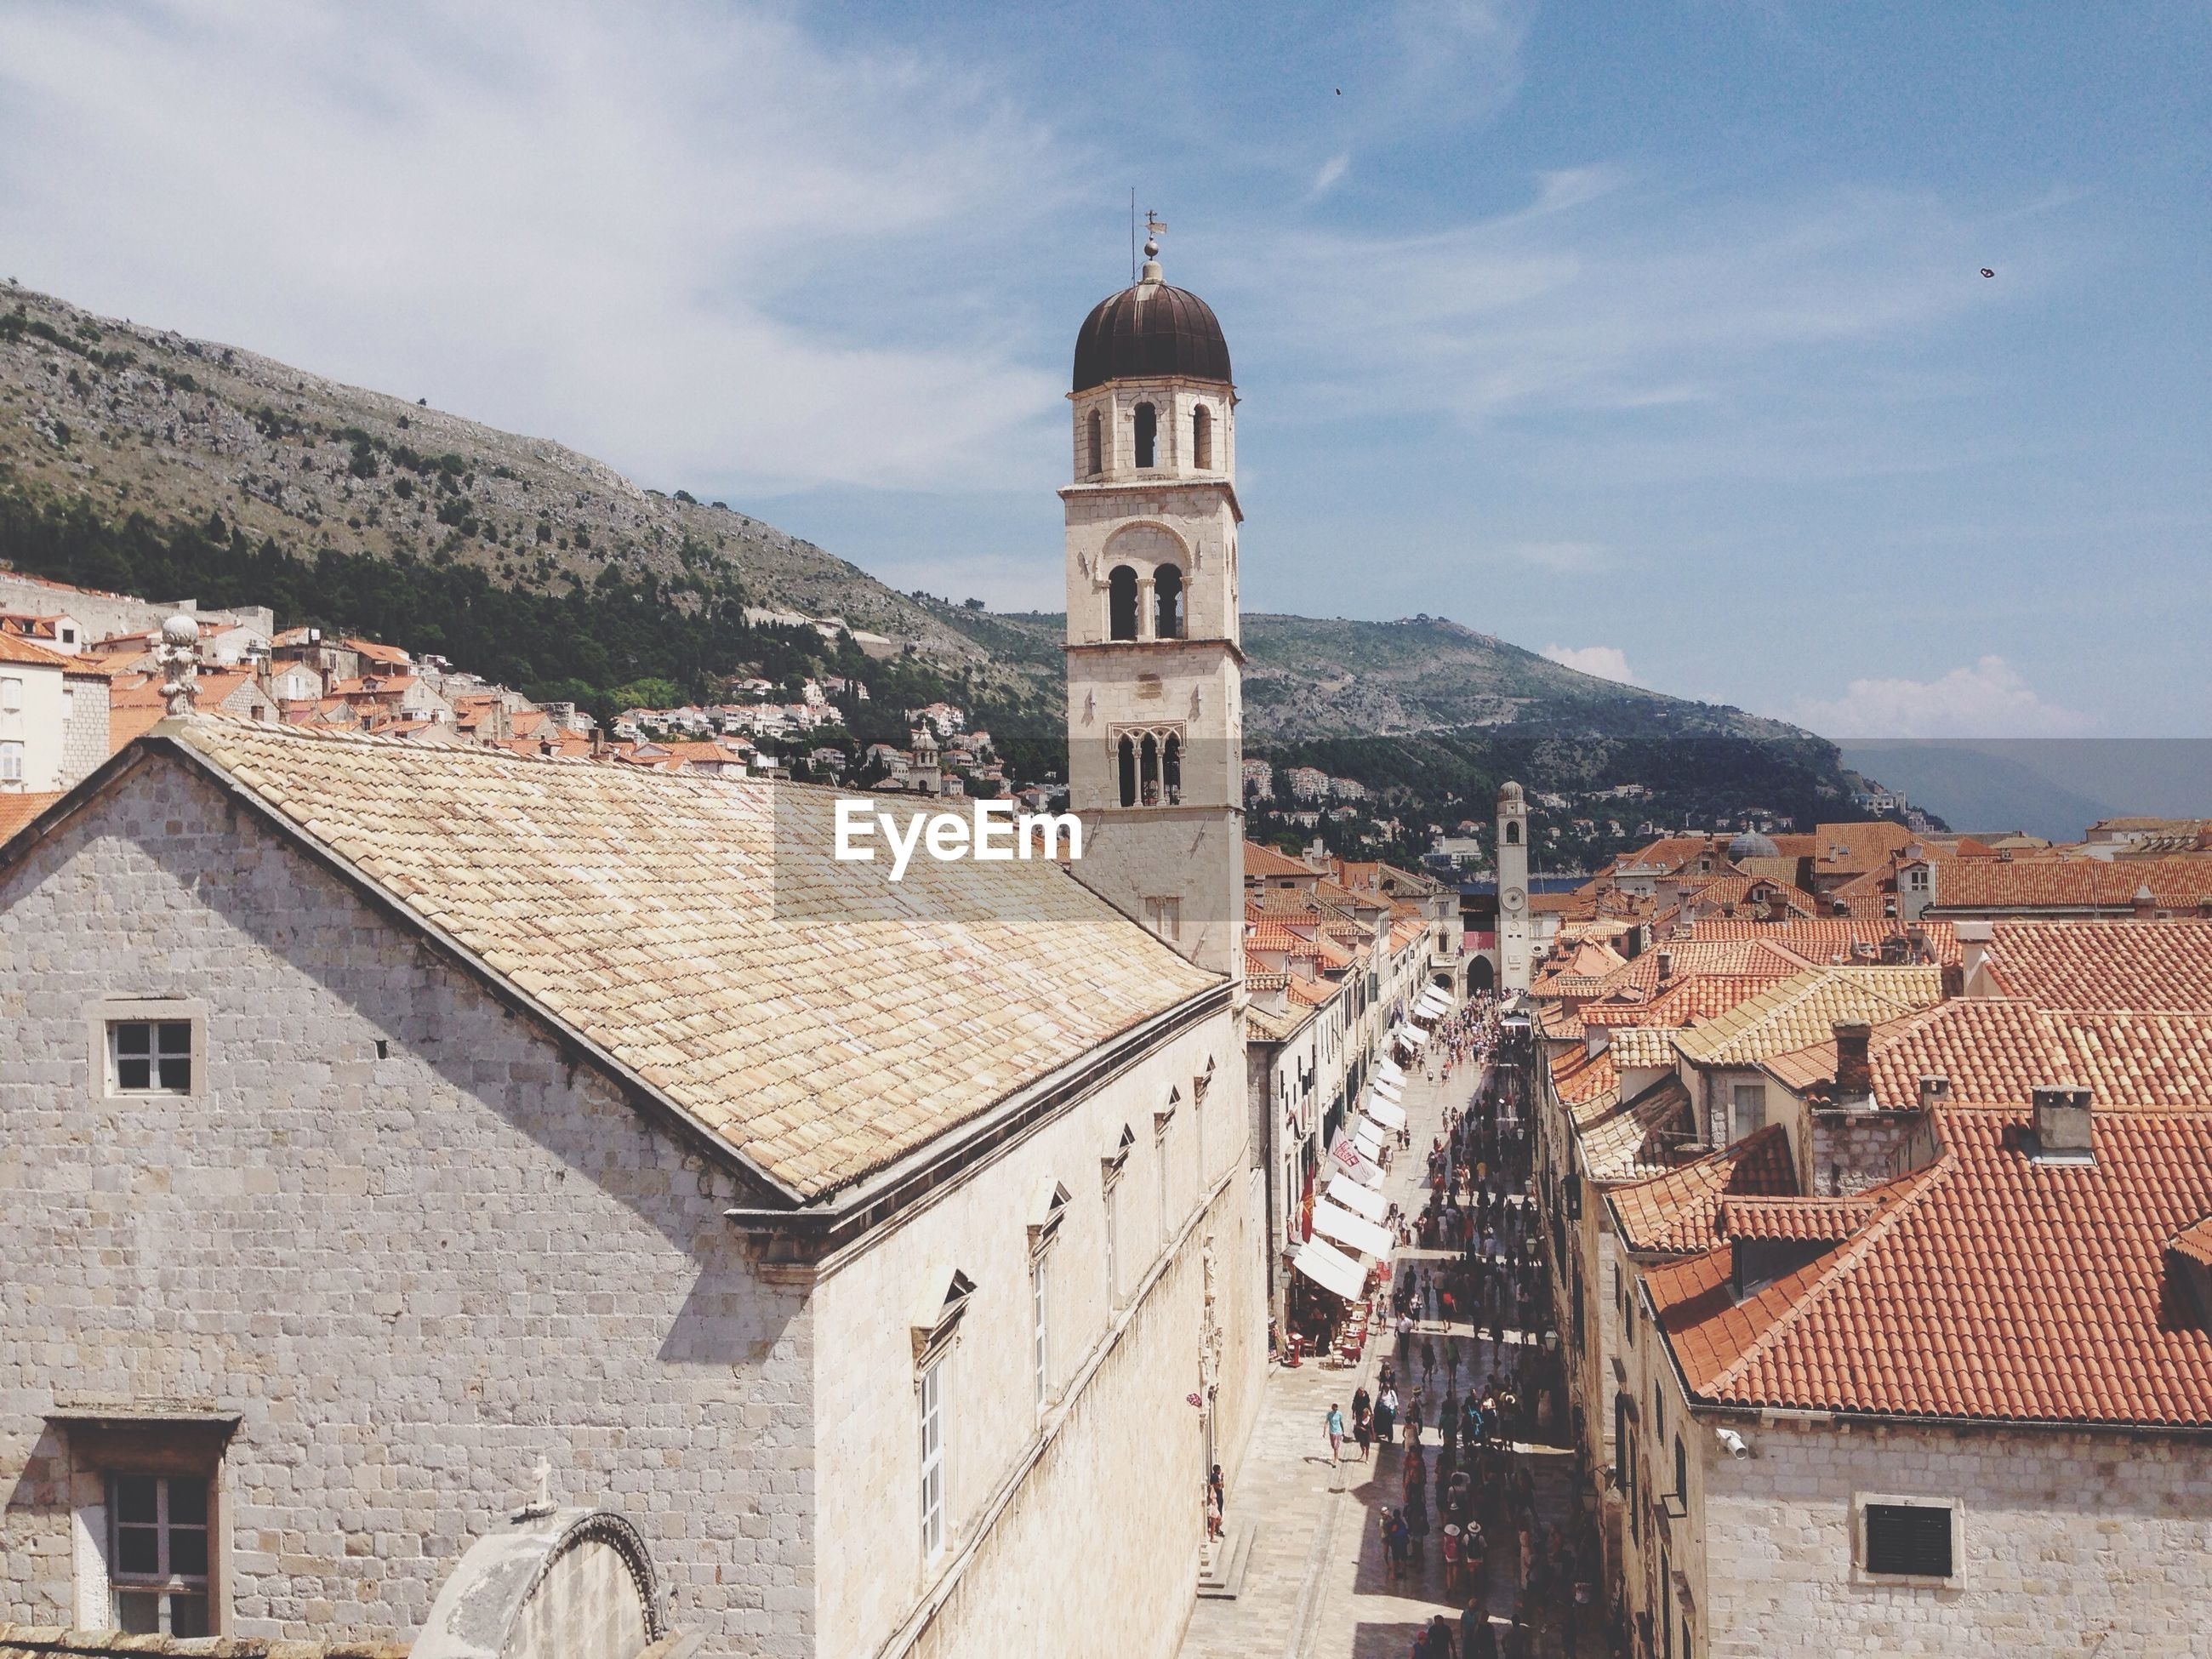 building exterior, architecture, built structure, church, place of worship, religion, spirituality, sky, cathedral, roof, old town, house, residential structure, dome, town, residential building, tower, day